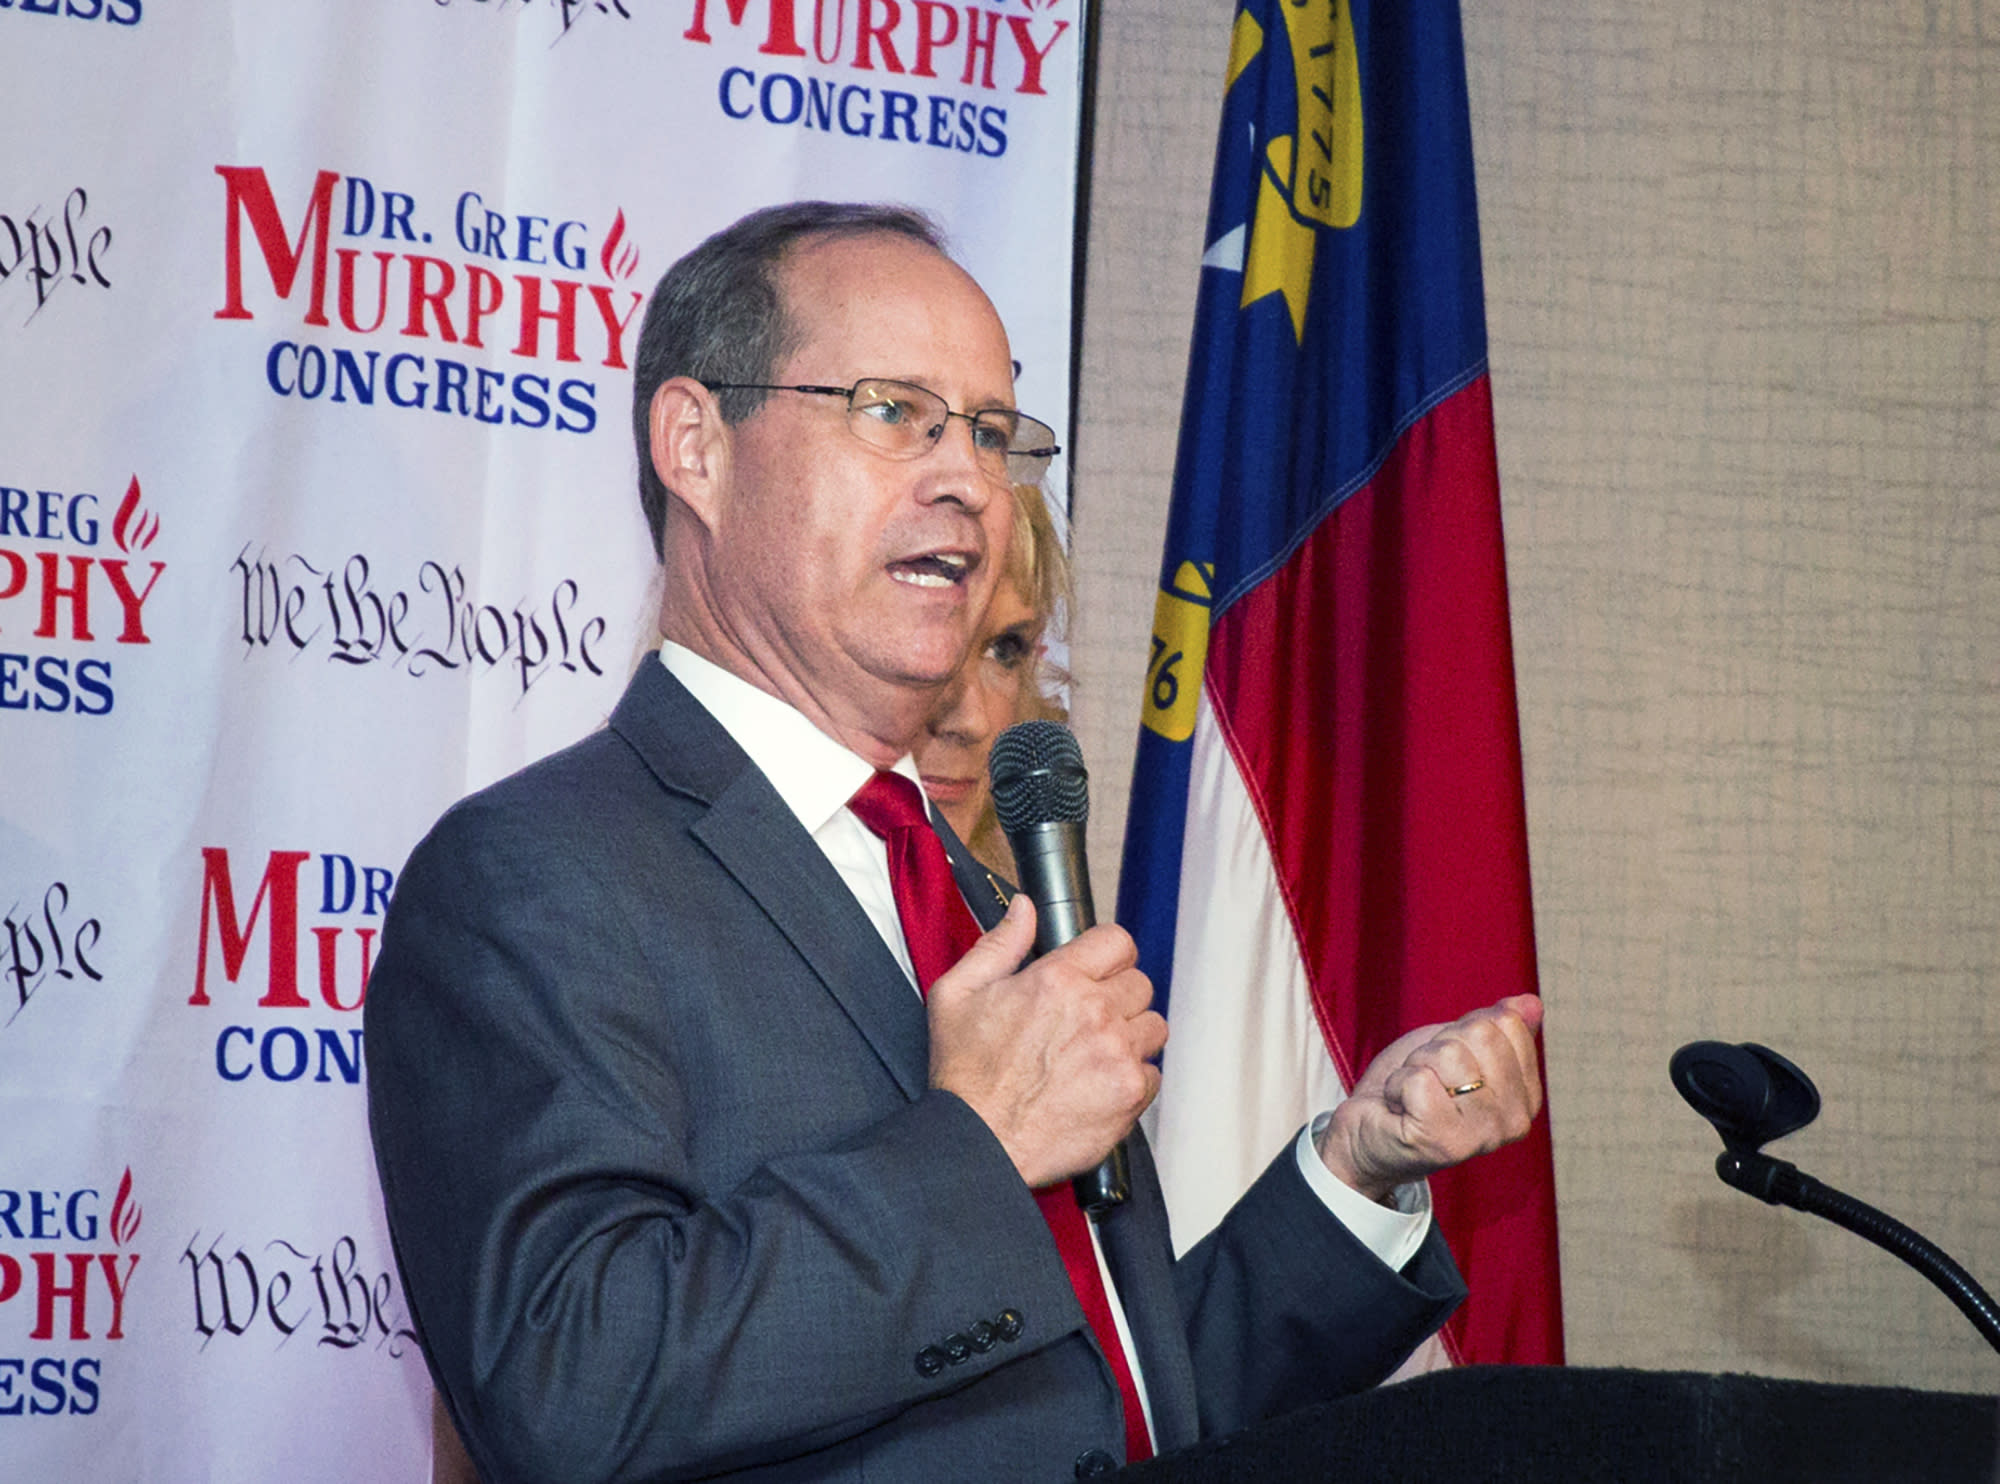 FILE - In this Tuesday, July 9, 2019 file photo, Greg Murphy speaks after he was announced the winner of the Republican nomination in North Carolina's 3rd Congressional District at Greenville Convention Center in Greenville, N.C. Voters on Tuesday decide the successor to the late Rep. Walter Jones Jr. in the 3rd Congressional District. But residents were likely thinking more about weather than elections Thursday, Sept. 5, 2019 as Dorian approached with high winds and heavy rains. Early in-person voting in the district has been cut short due to the storm. (Molly Urbina/The Daily Reflector via AP, File)